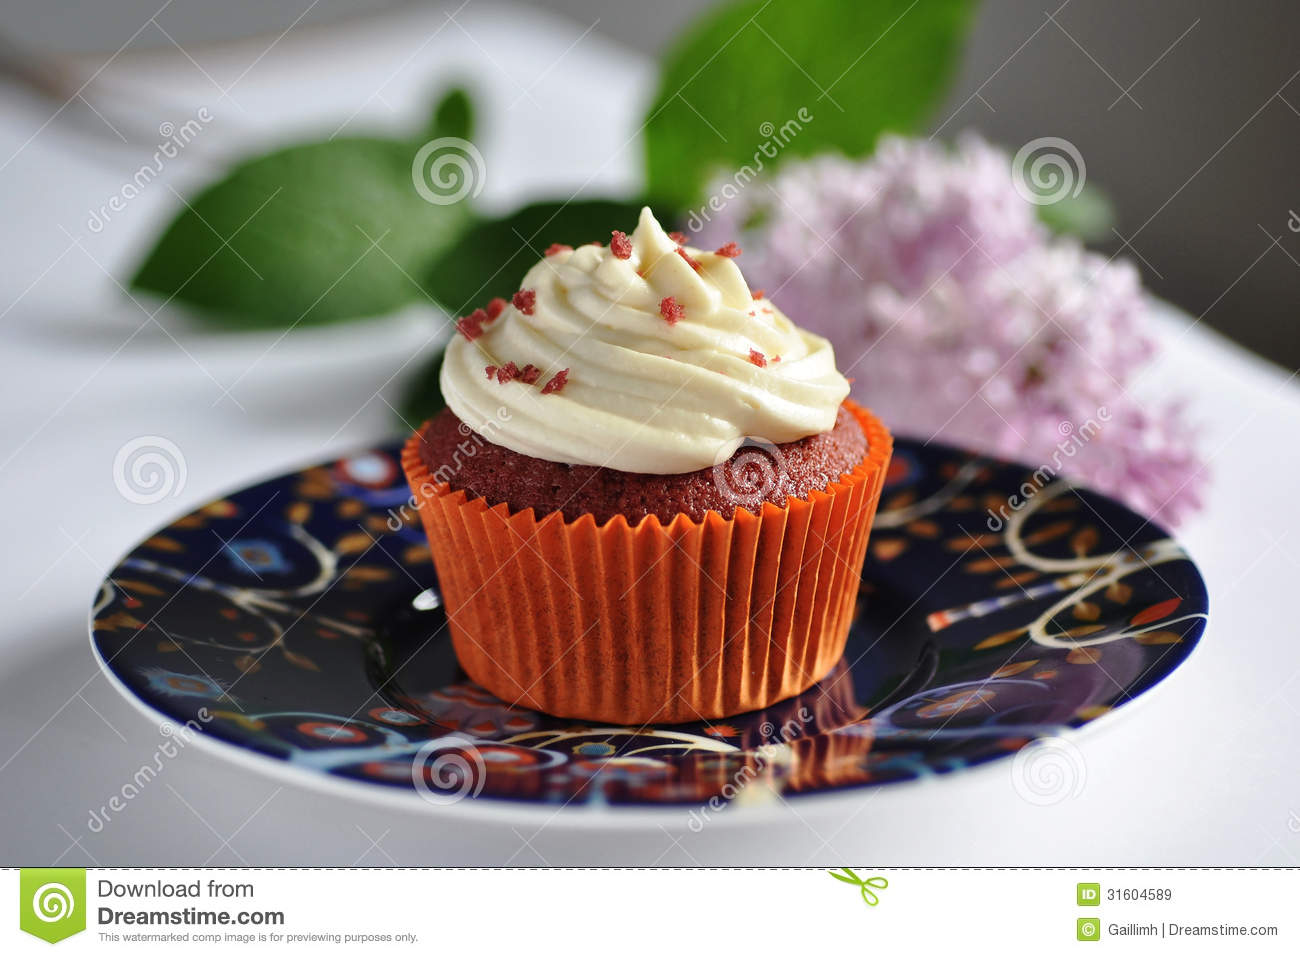 Cupcake Royalty Free Stock Images - Image: 31604589